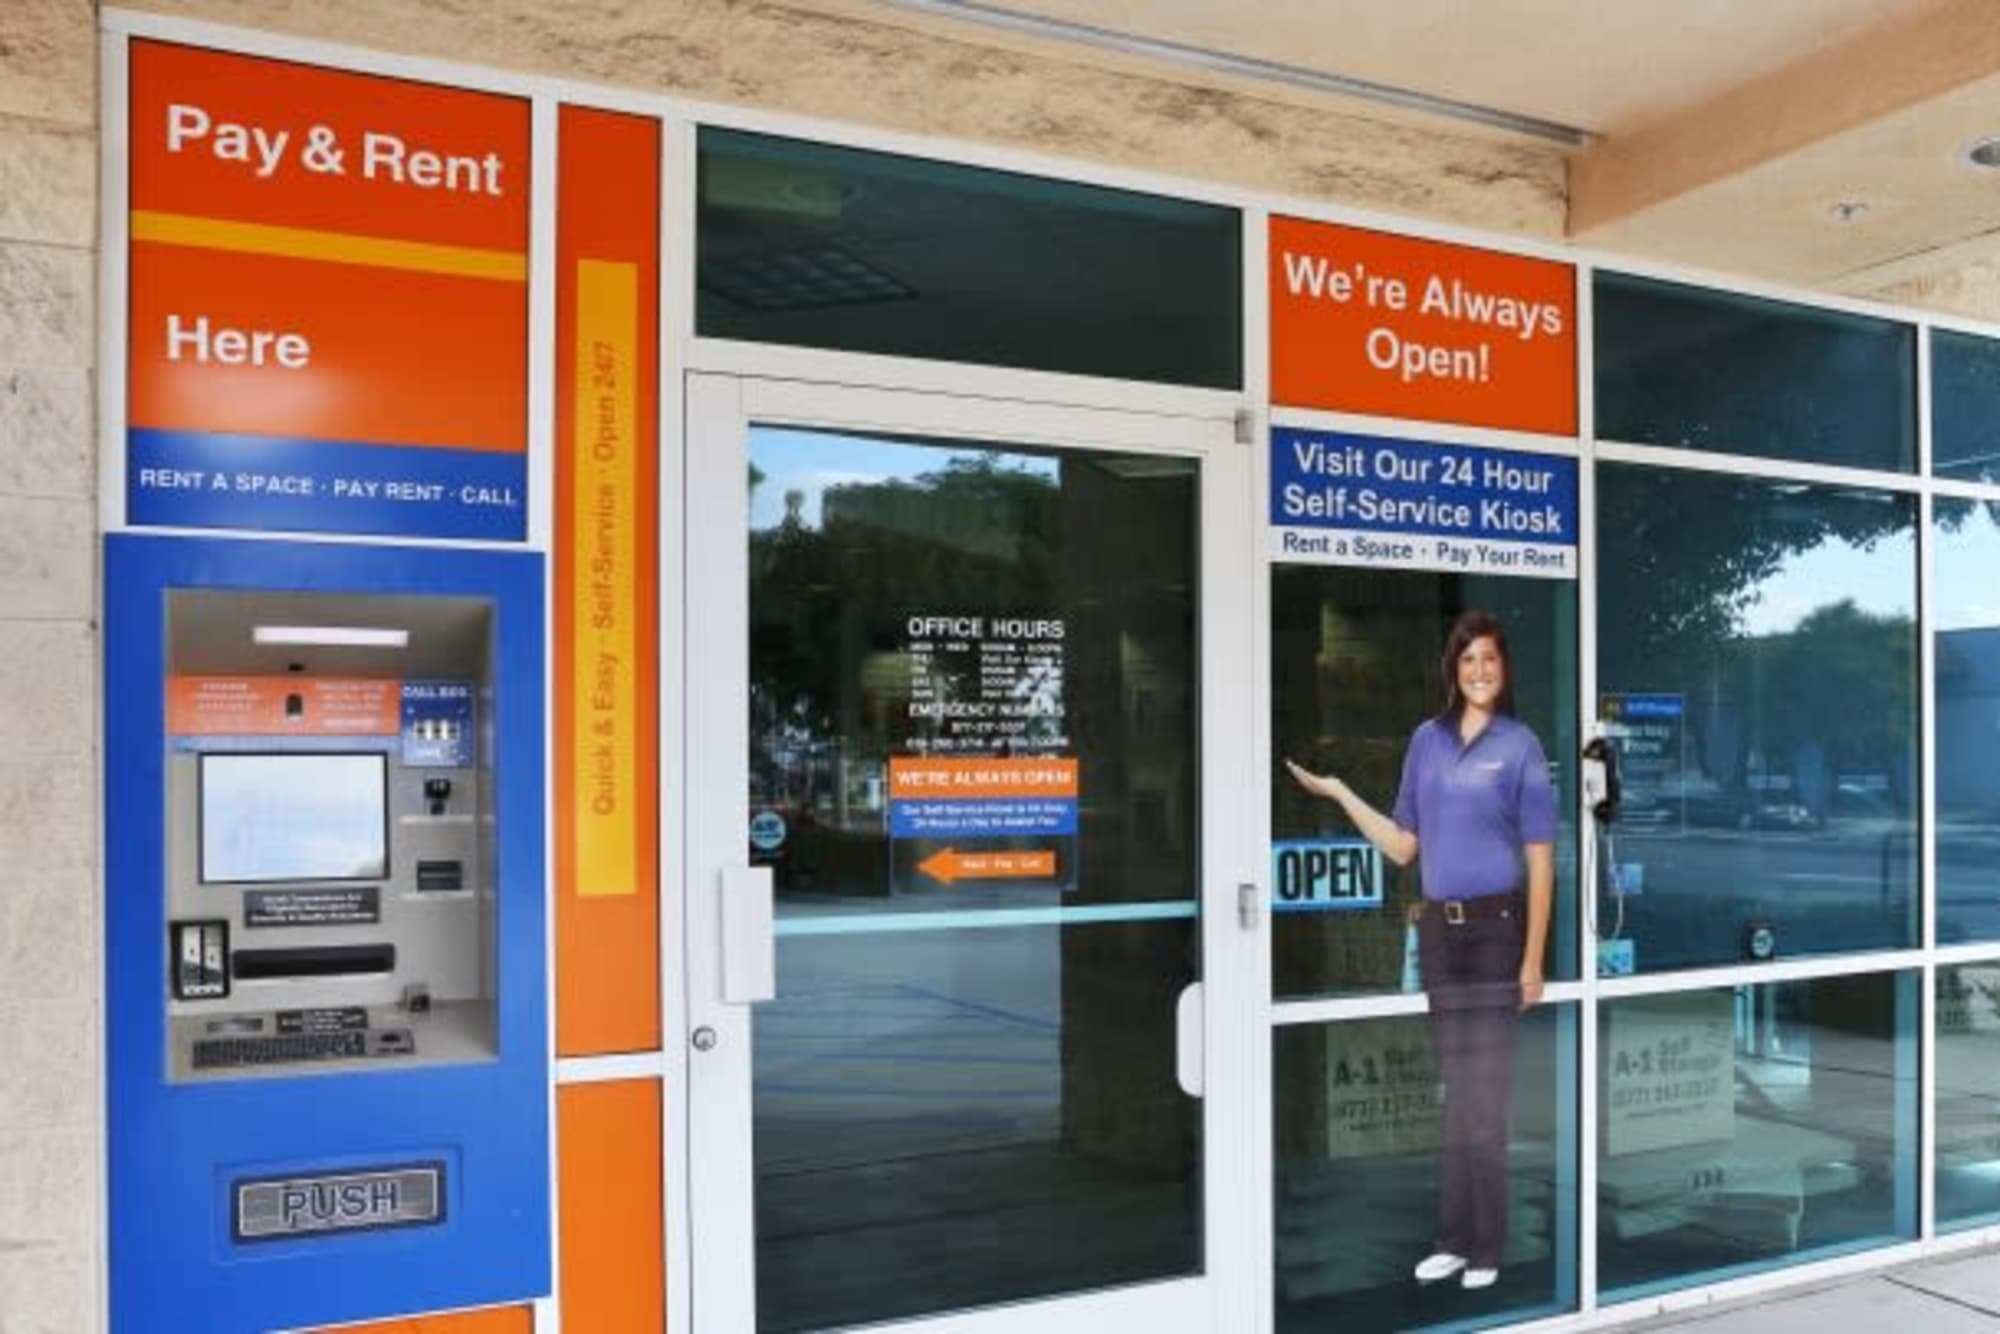 Self-serve kiosk where customers have the option to pay rent at A-1 Self Storage